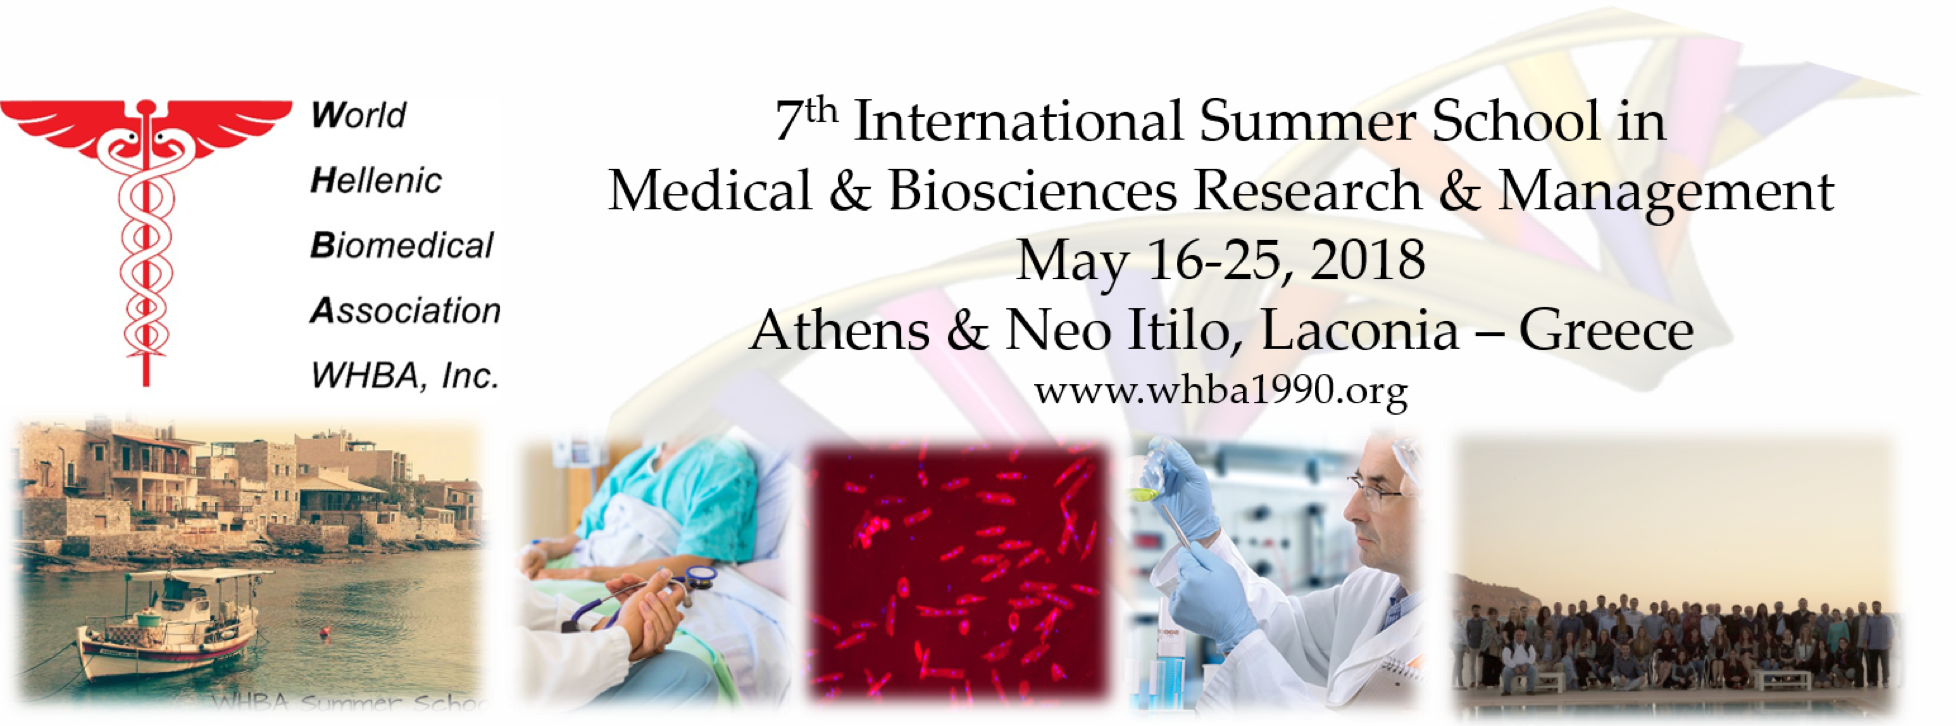 7th International Summer School in Medical & Biosciences Research & Management | WHBA